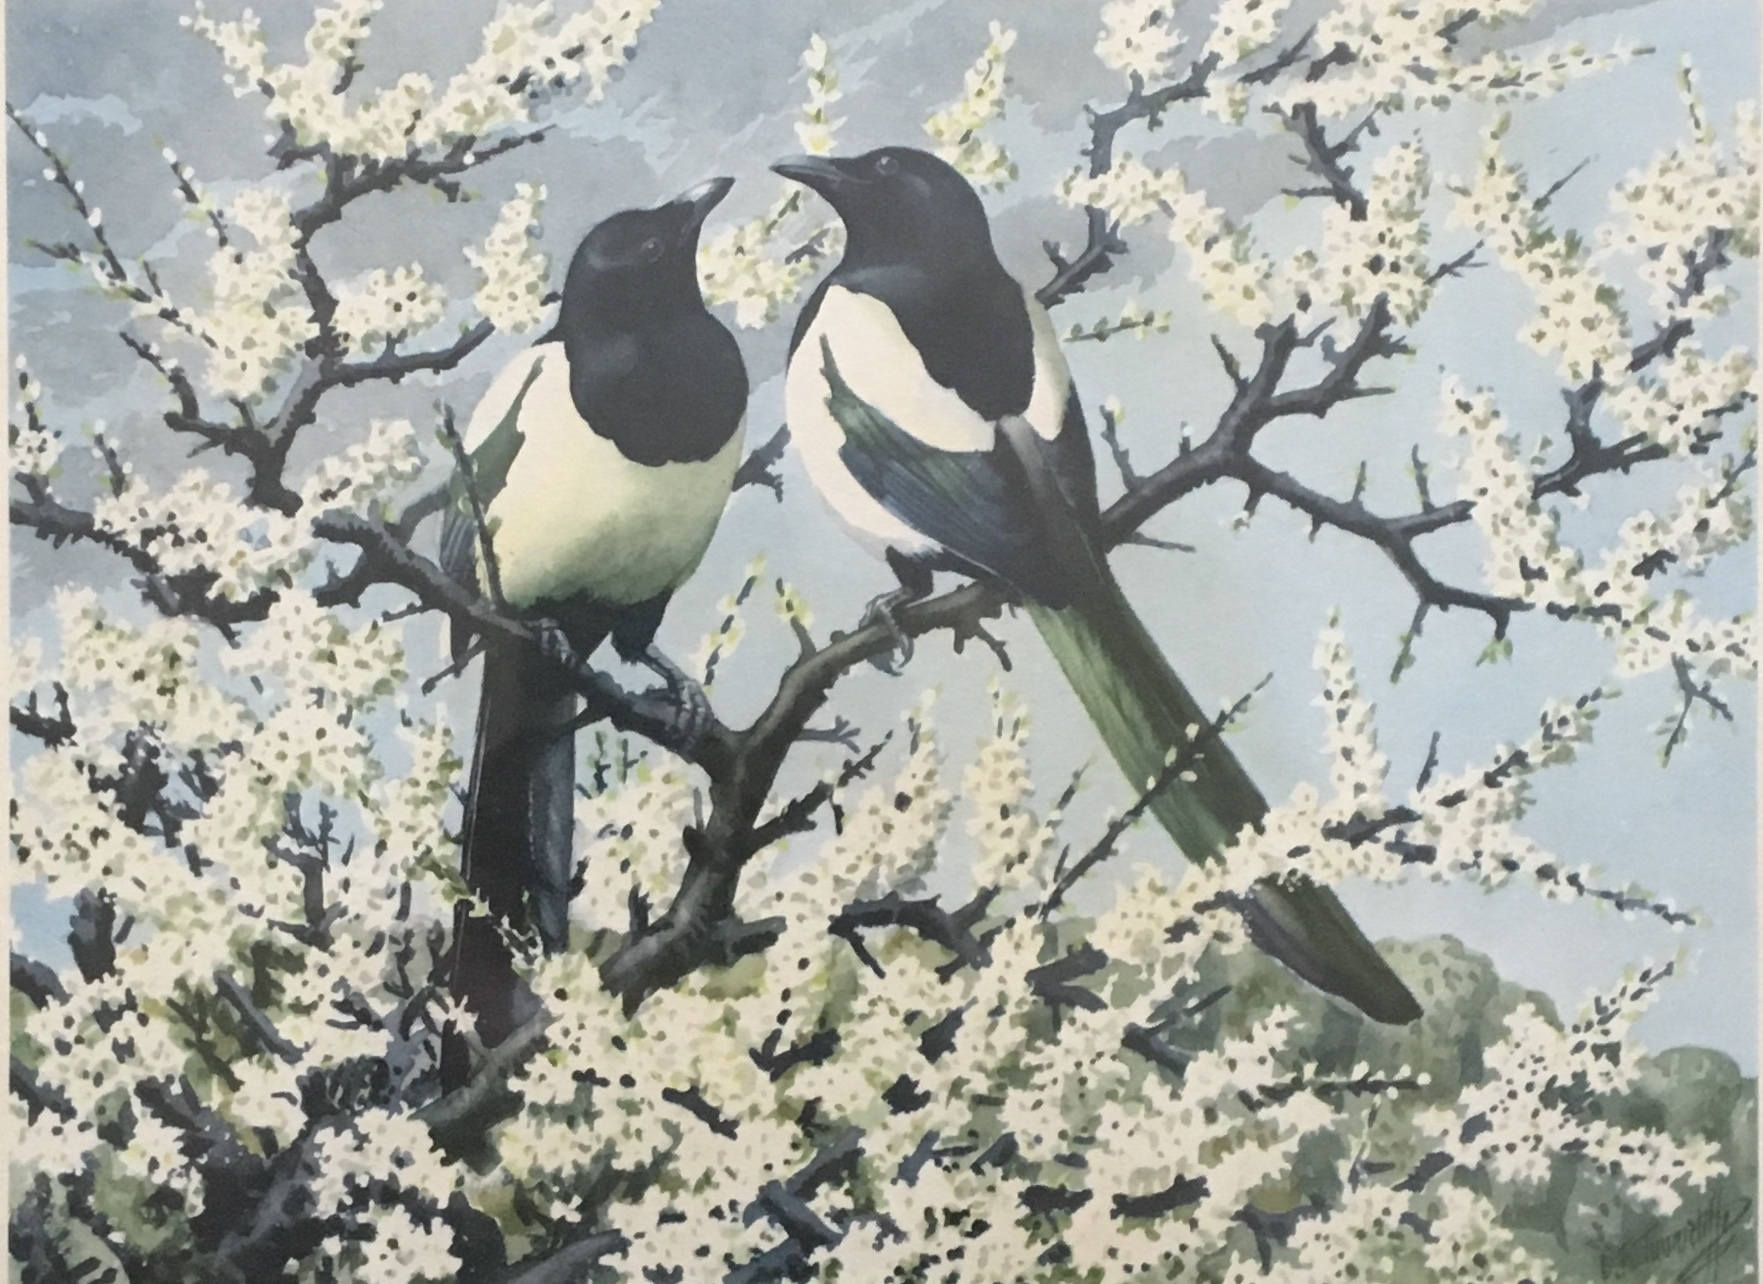 Magpie by Charles F. Tunnicliffe, OBE, RA (1901-1979)